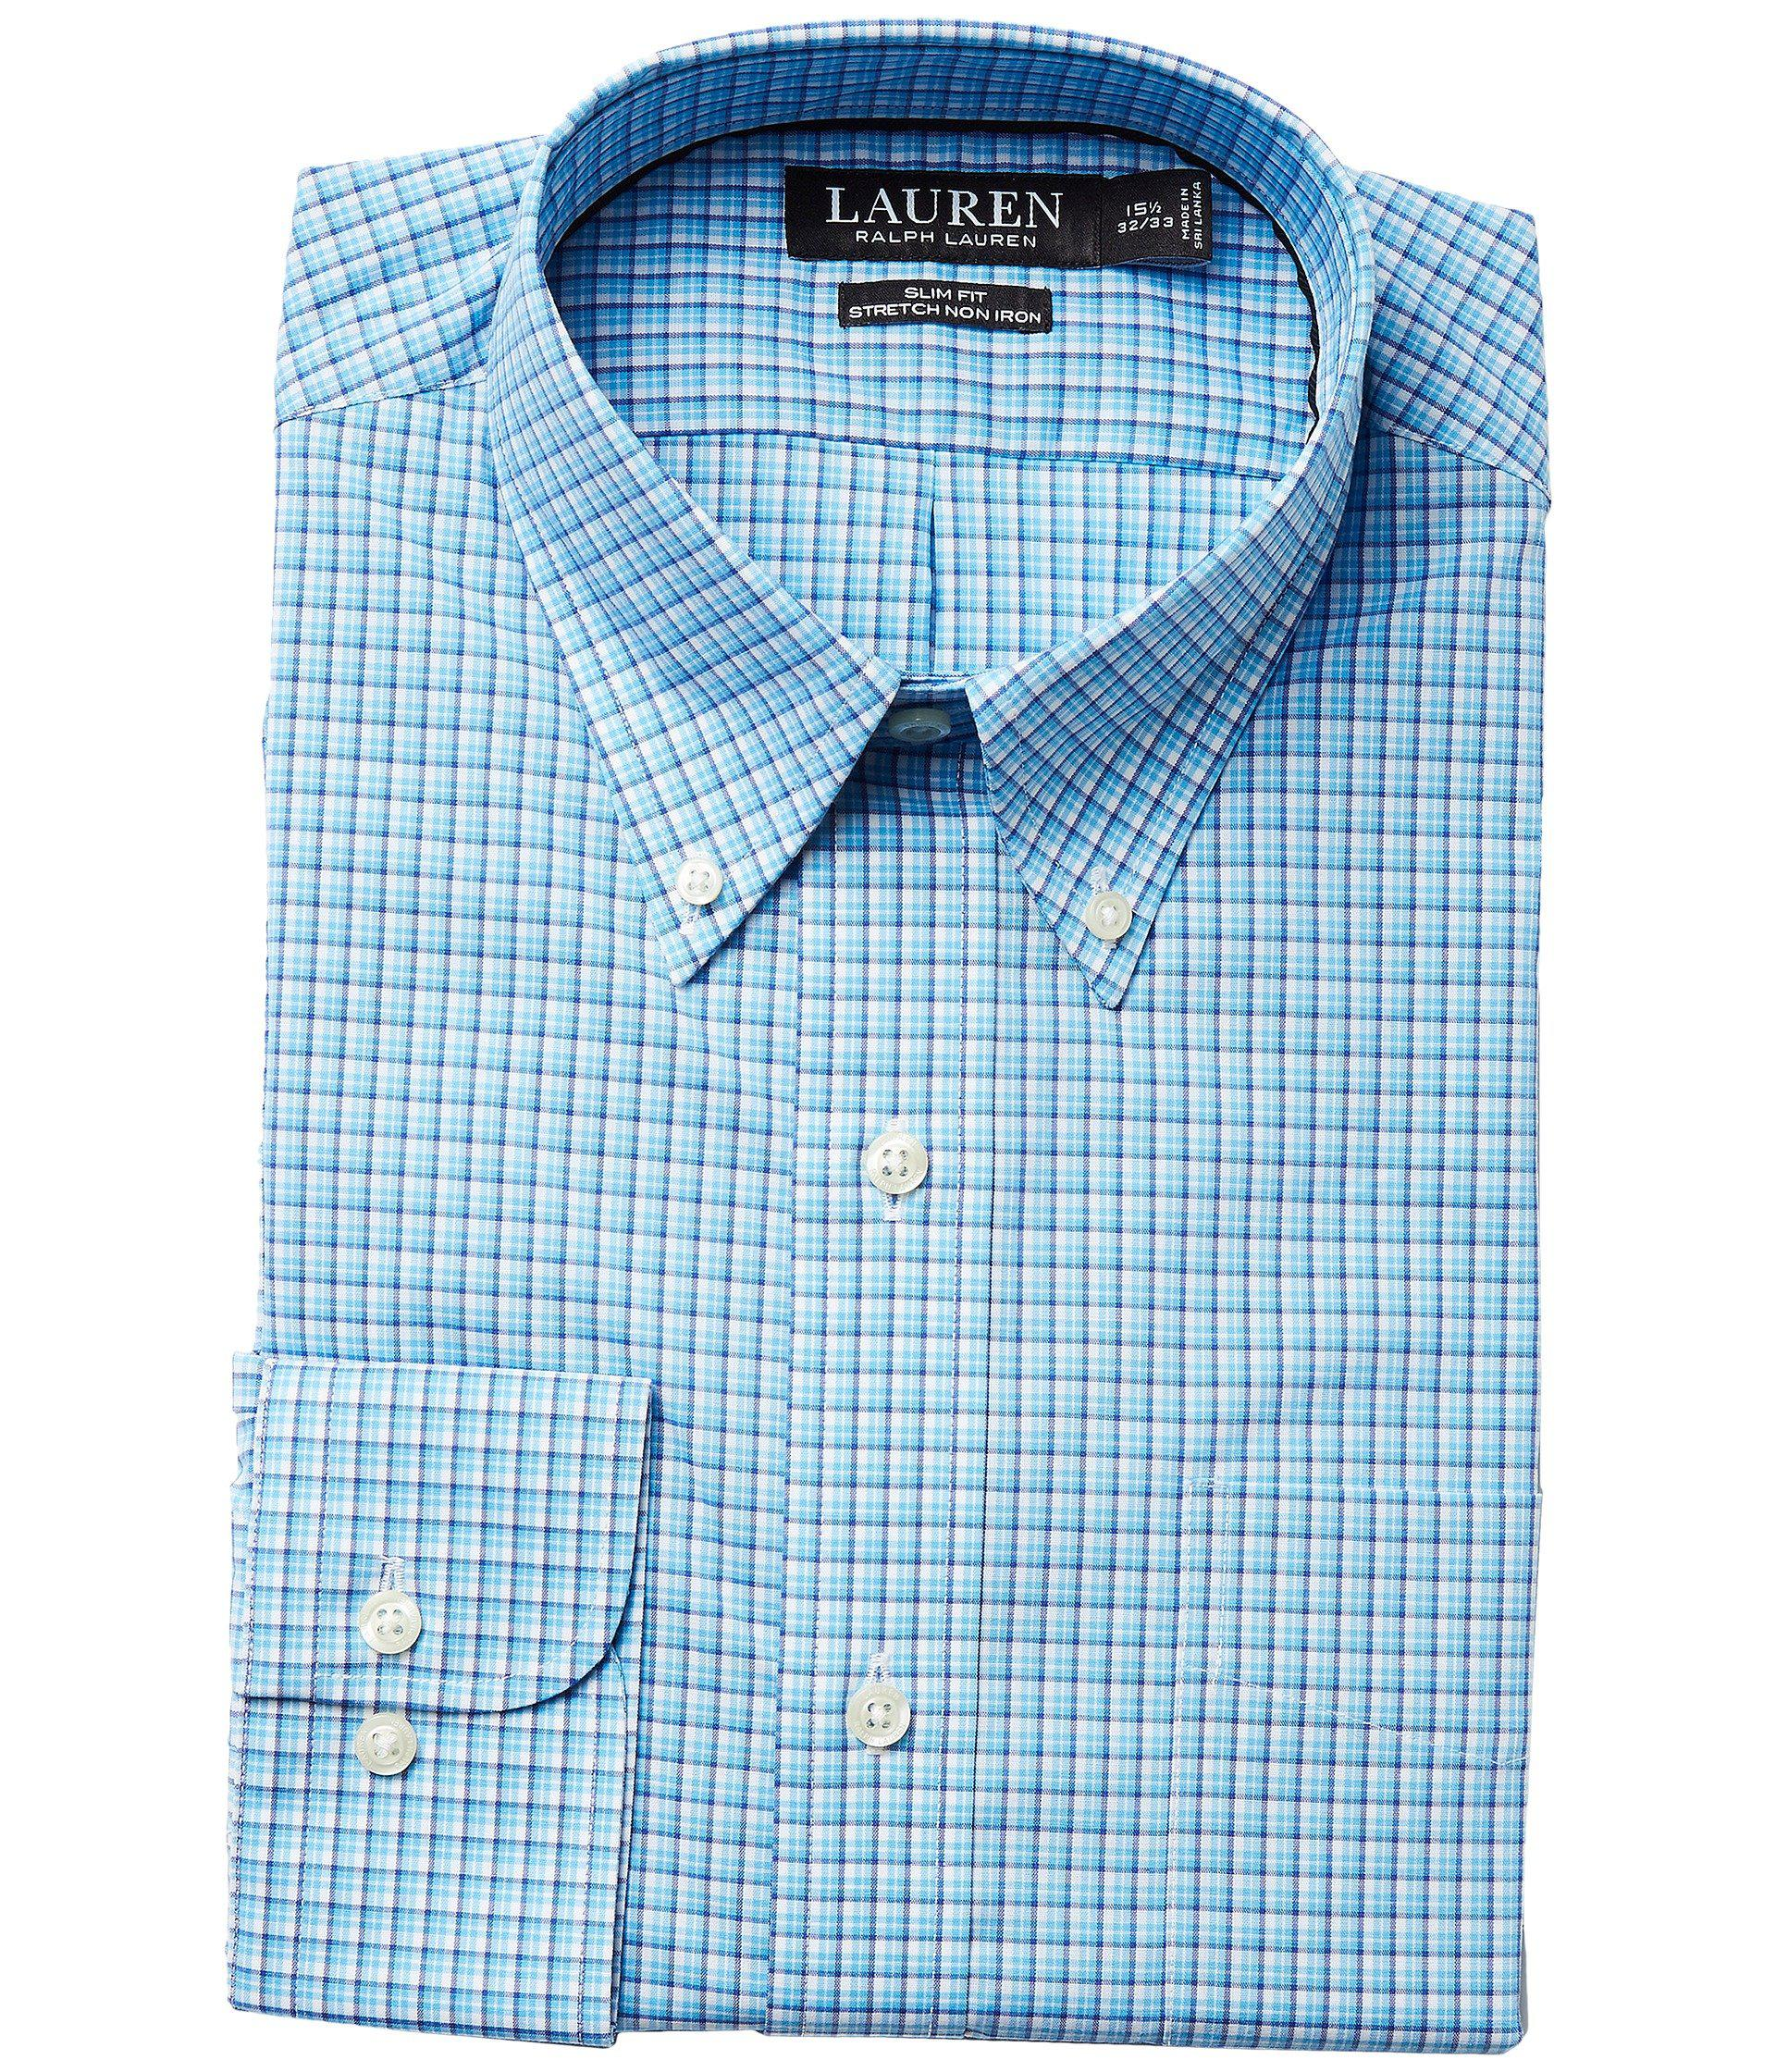 5d35e2a7528 Lyst - Lauren by Ralph Lauren Slim Fit Non Iron Broadcloth Plaid ...